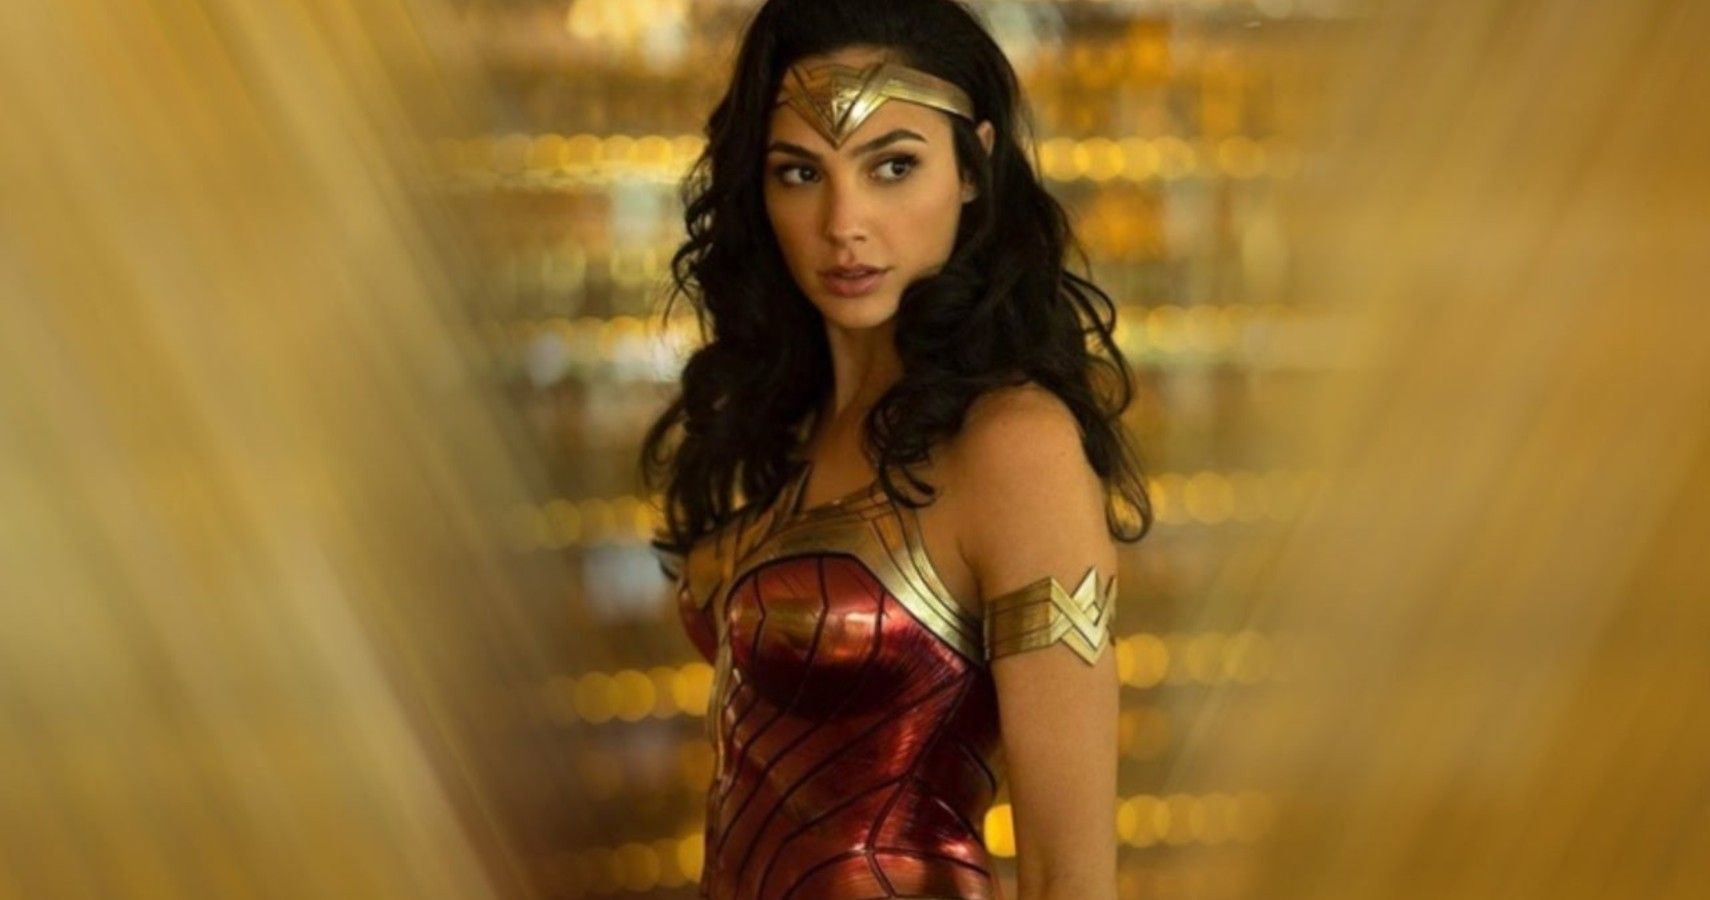 Wonder Woman 1984: 10 Things We Want To See From The DC Sequel